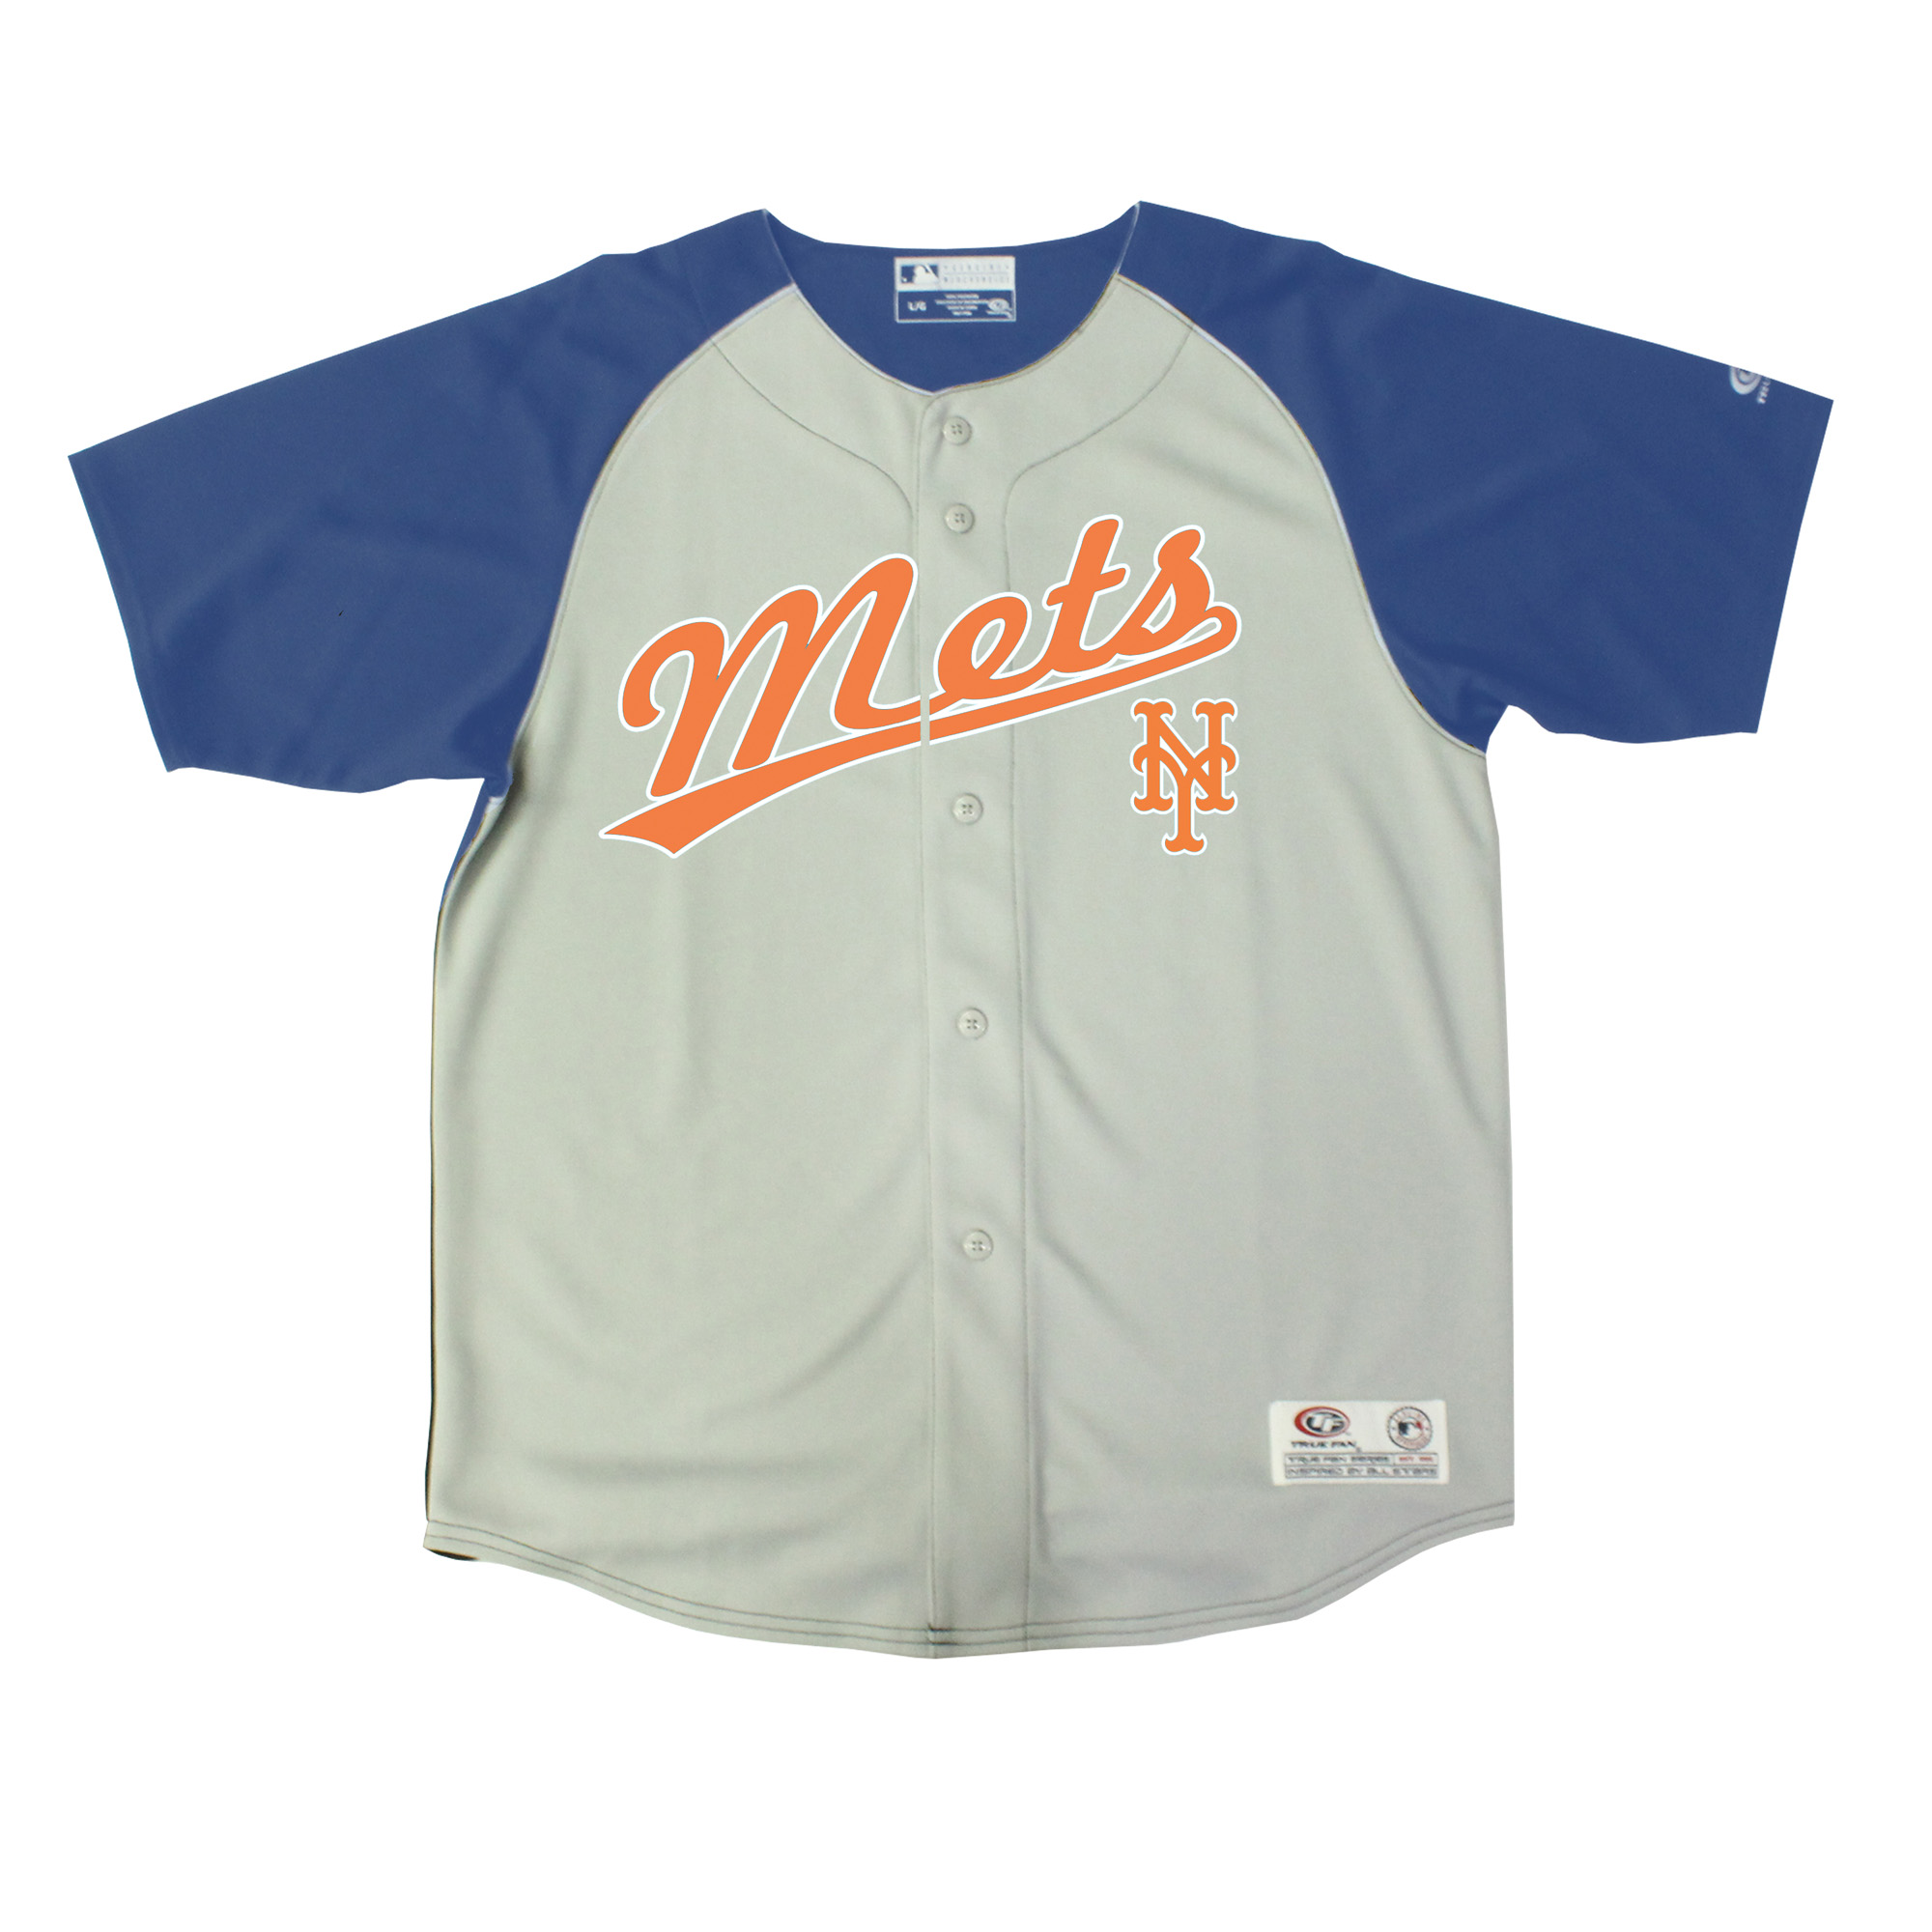 New York Mets Stitches Youth Double Play Jersey - Gray/Royal